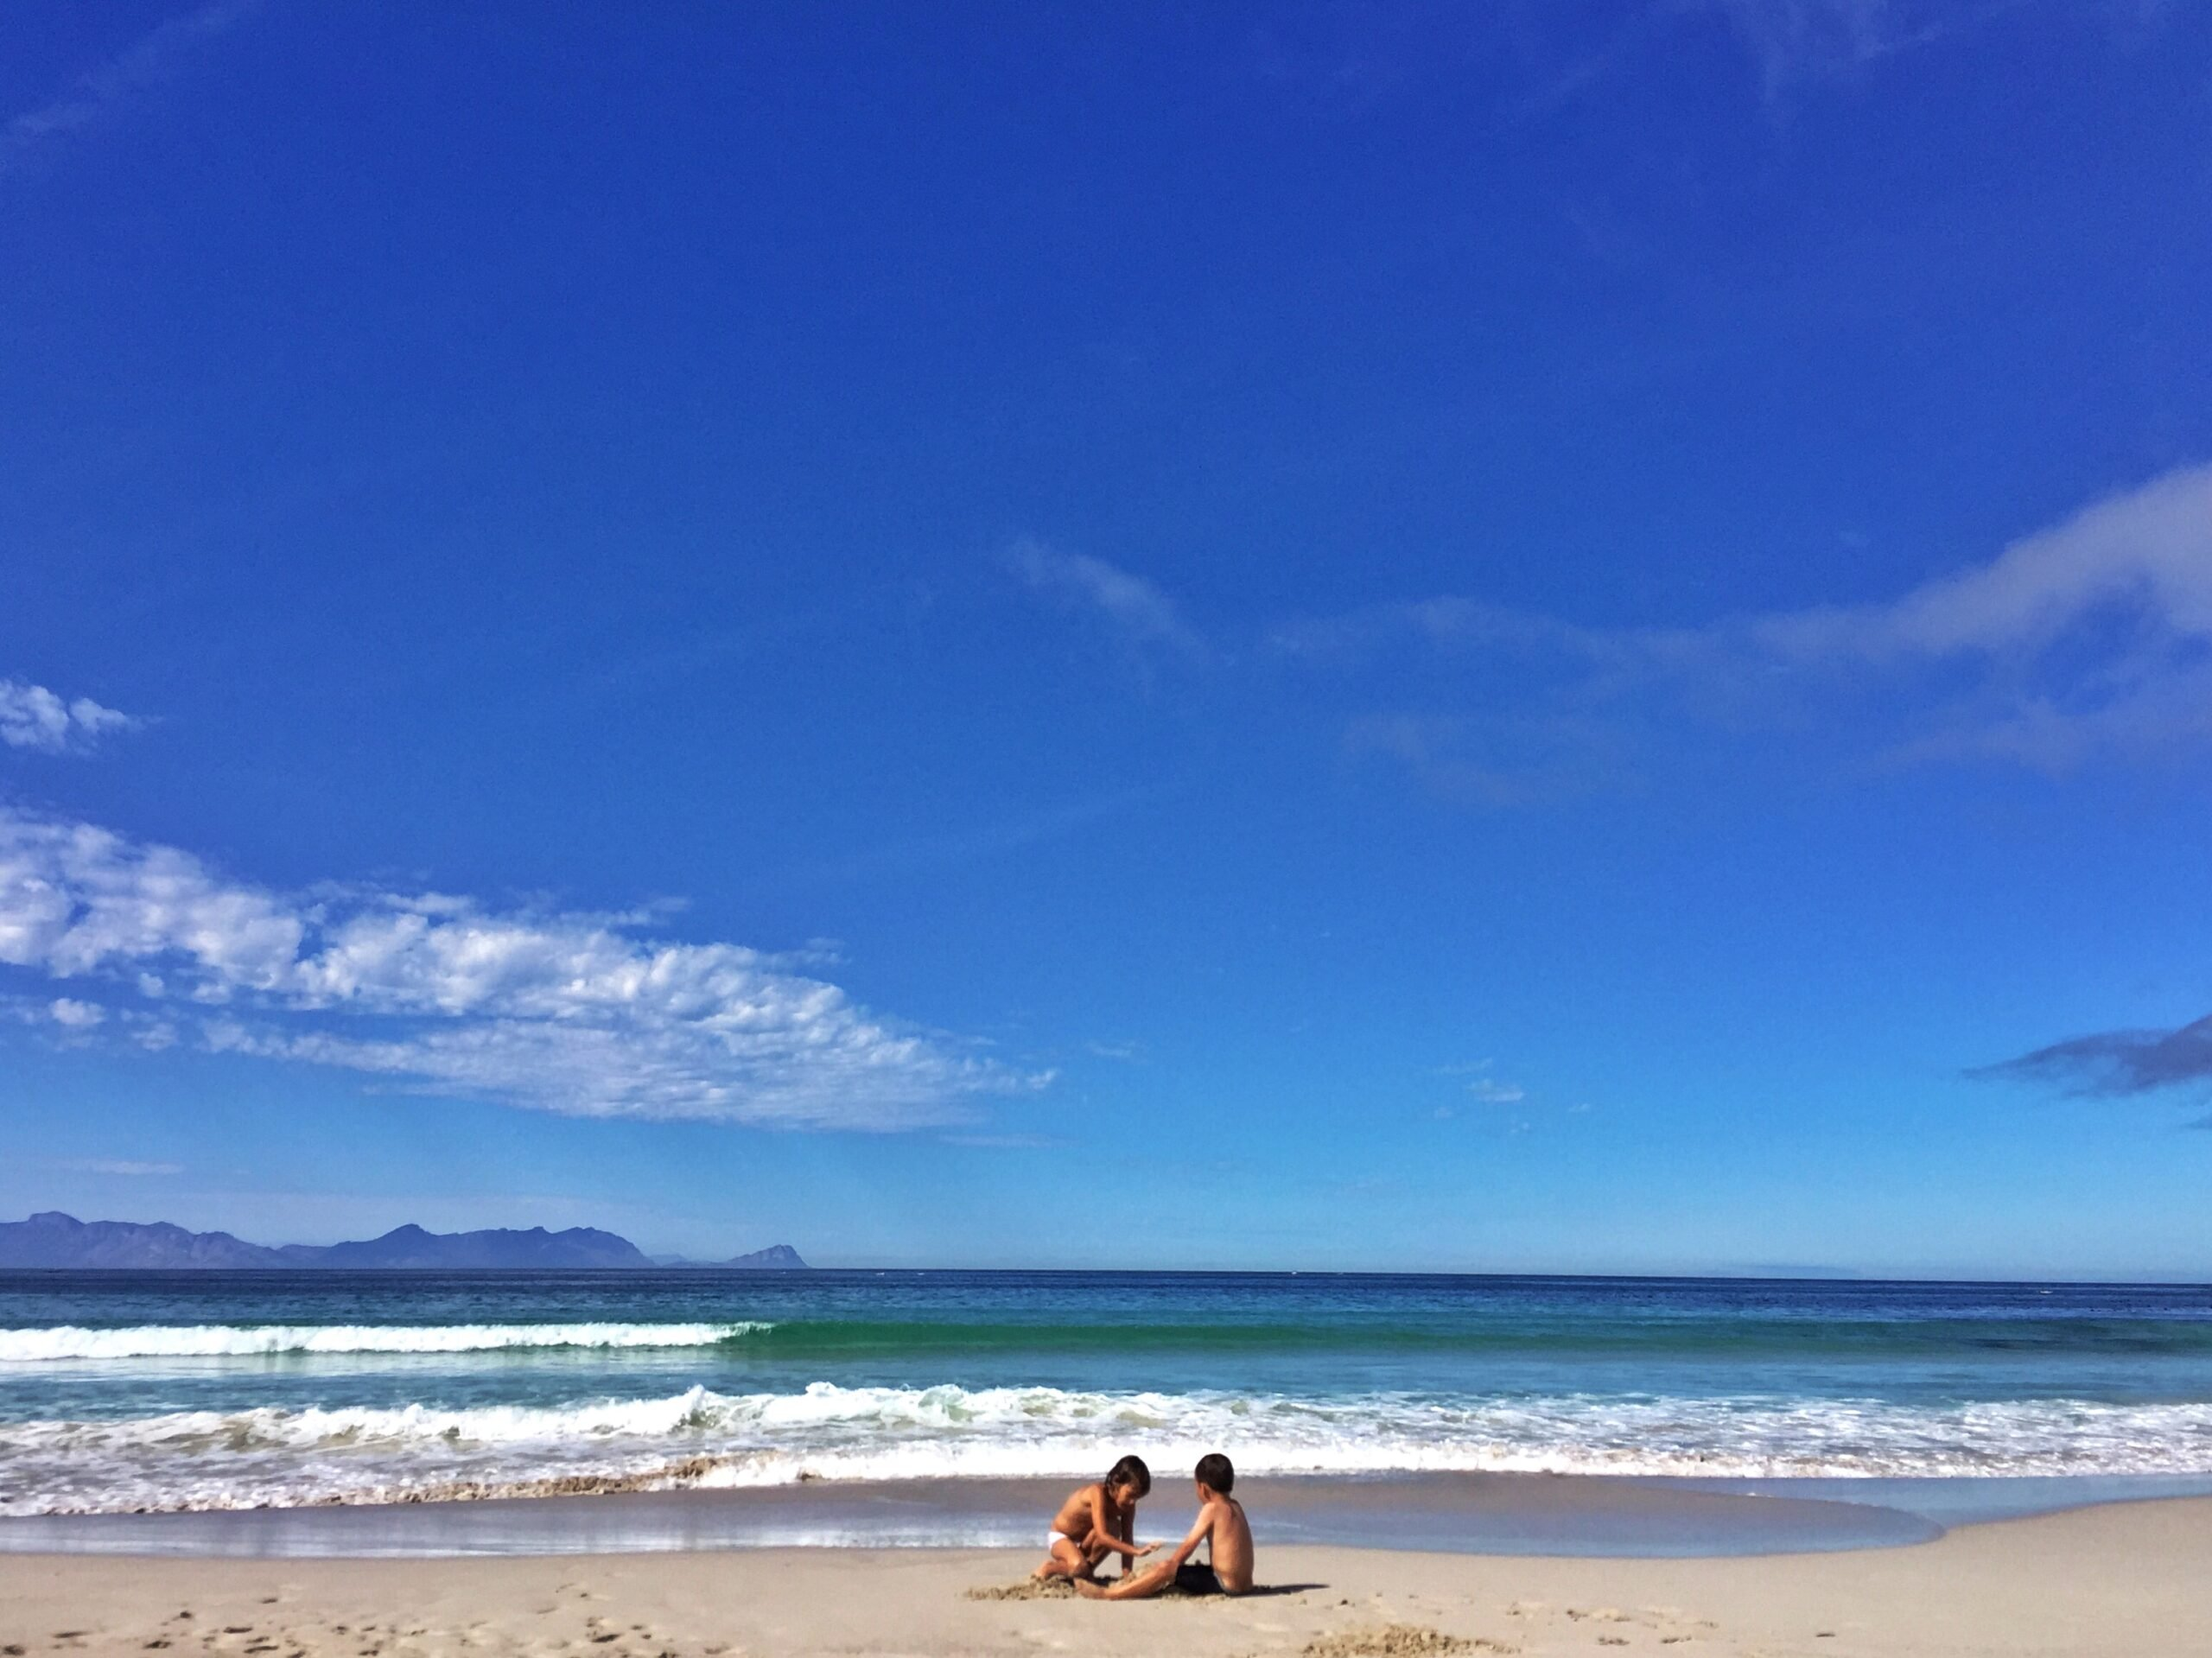 SOUTH AFRICA: Where Two Oceans Meet